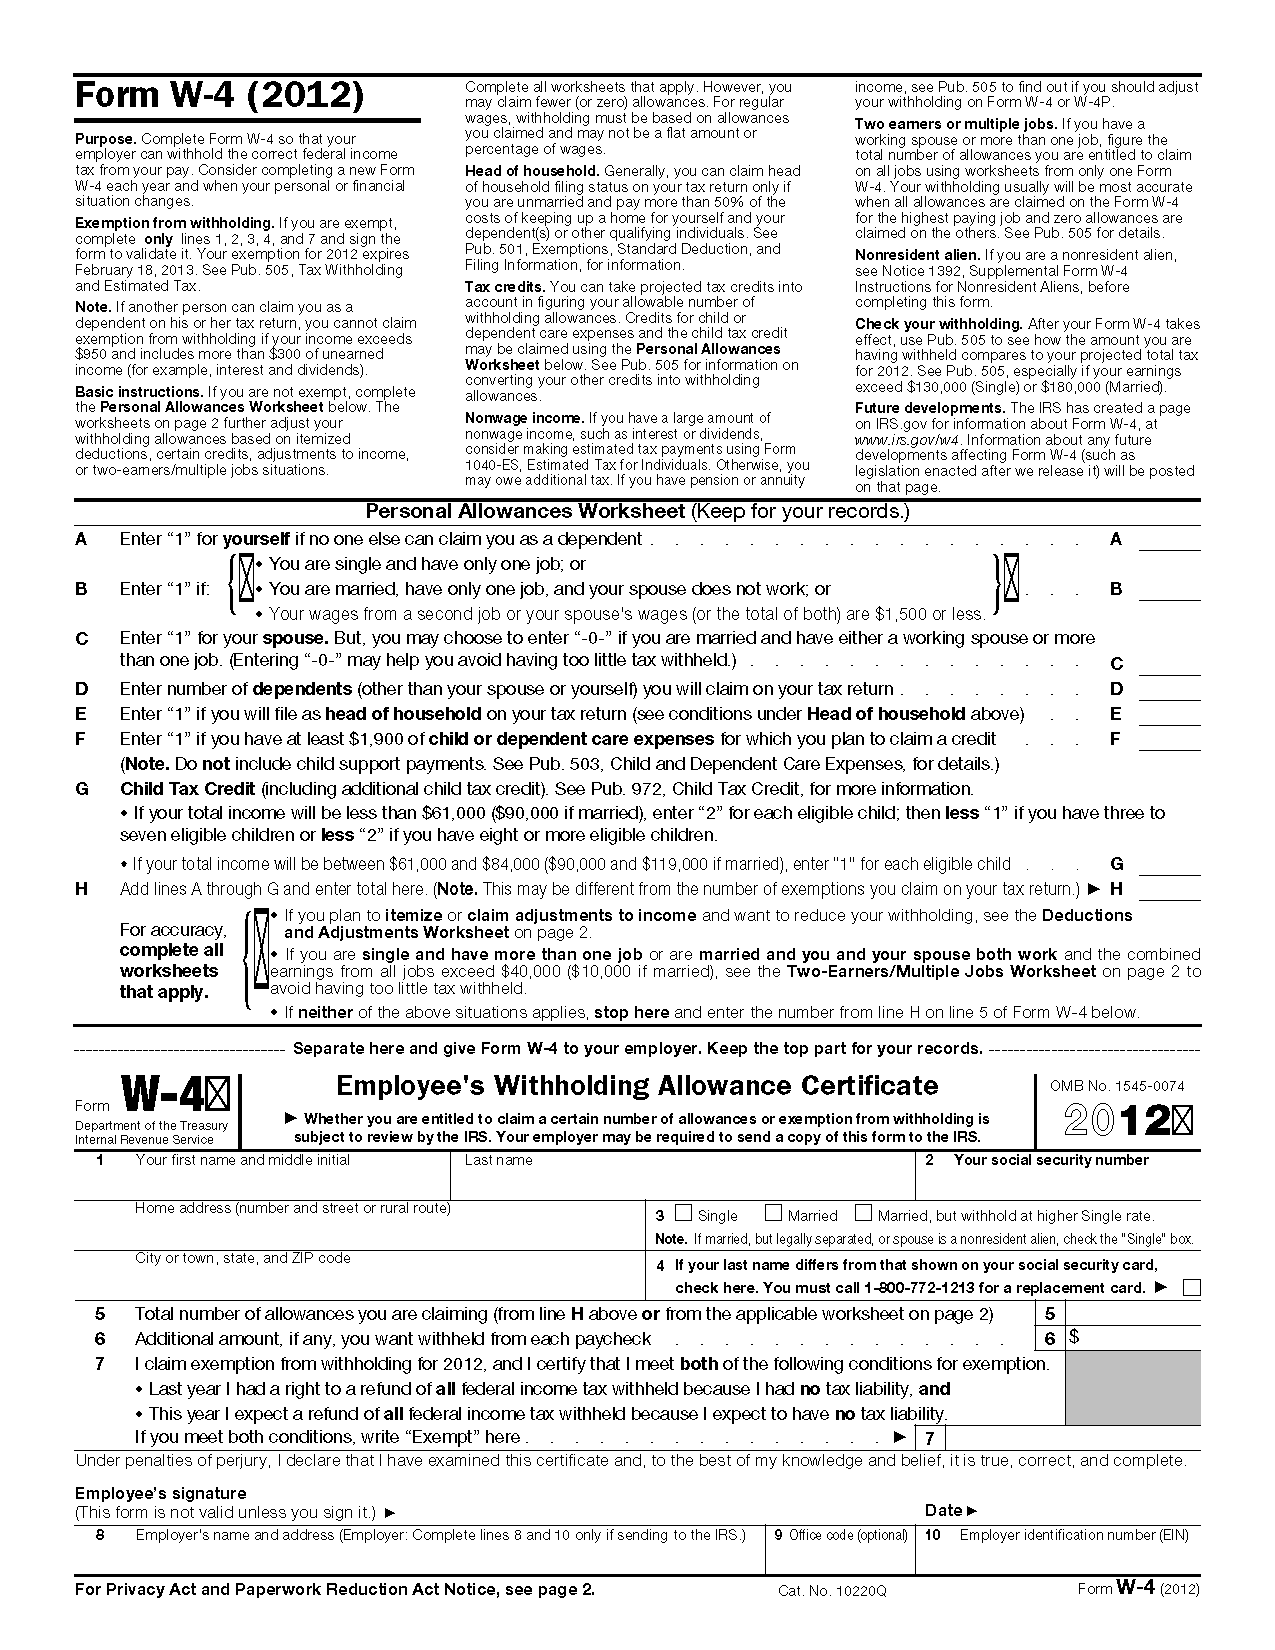 Worksheets Allowances Worksheet form w 4 employees withholding allowance certificate view all 2011 irs tax forms